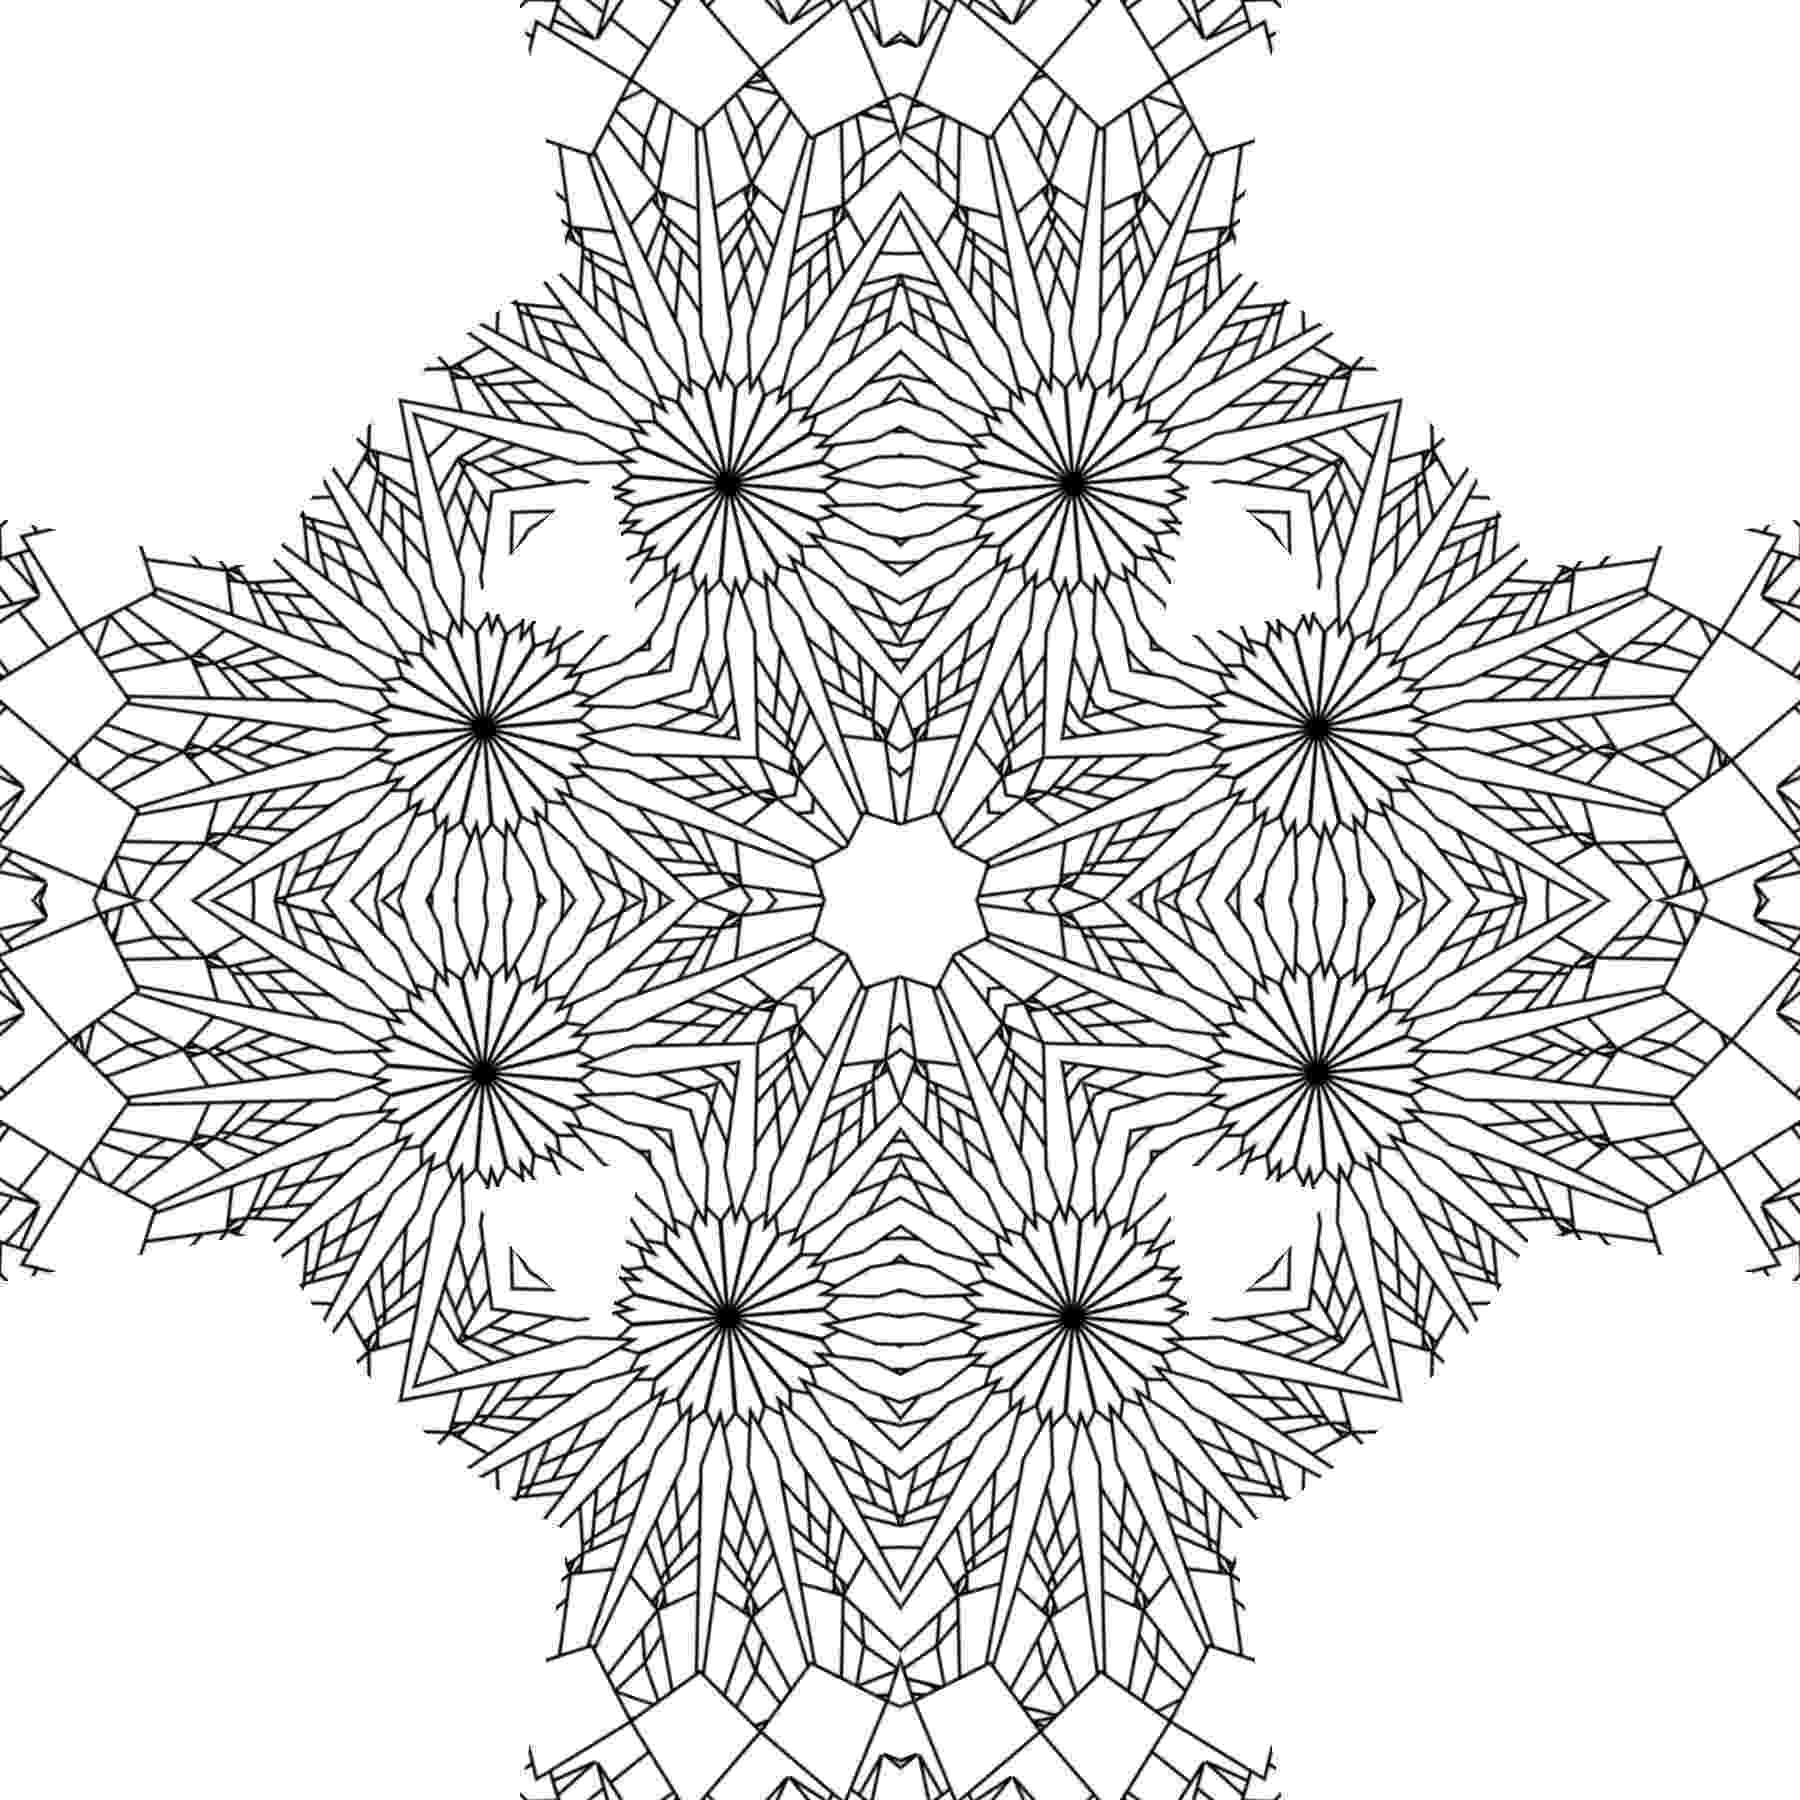 colouring pattern rosmaling coloring pages fake norwegian heritage pattern colouring